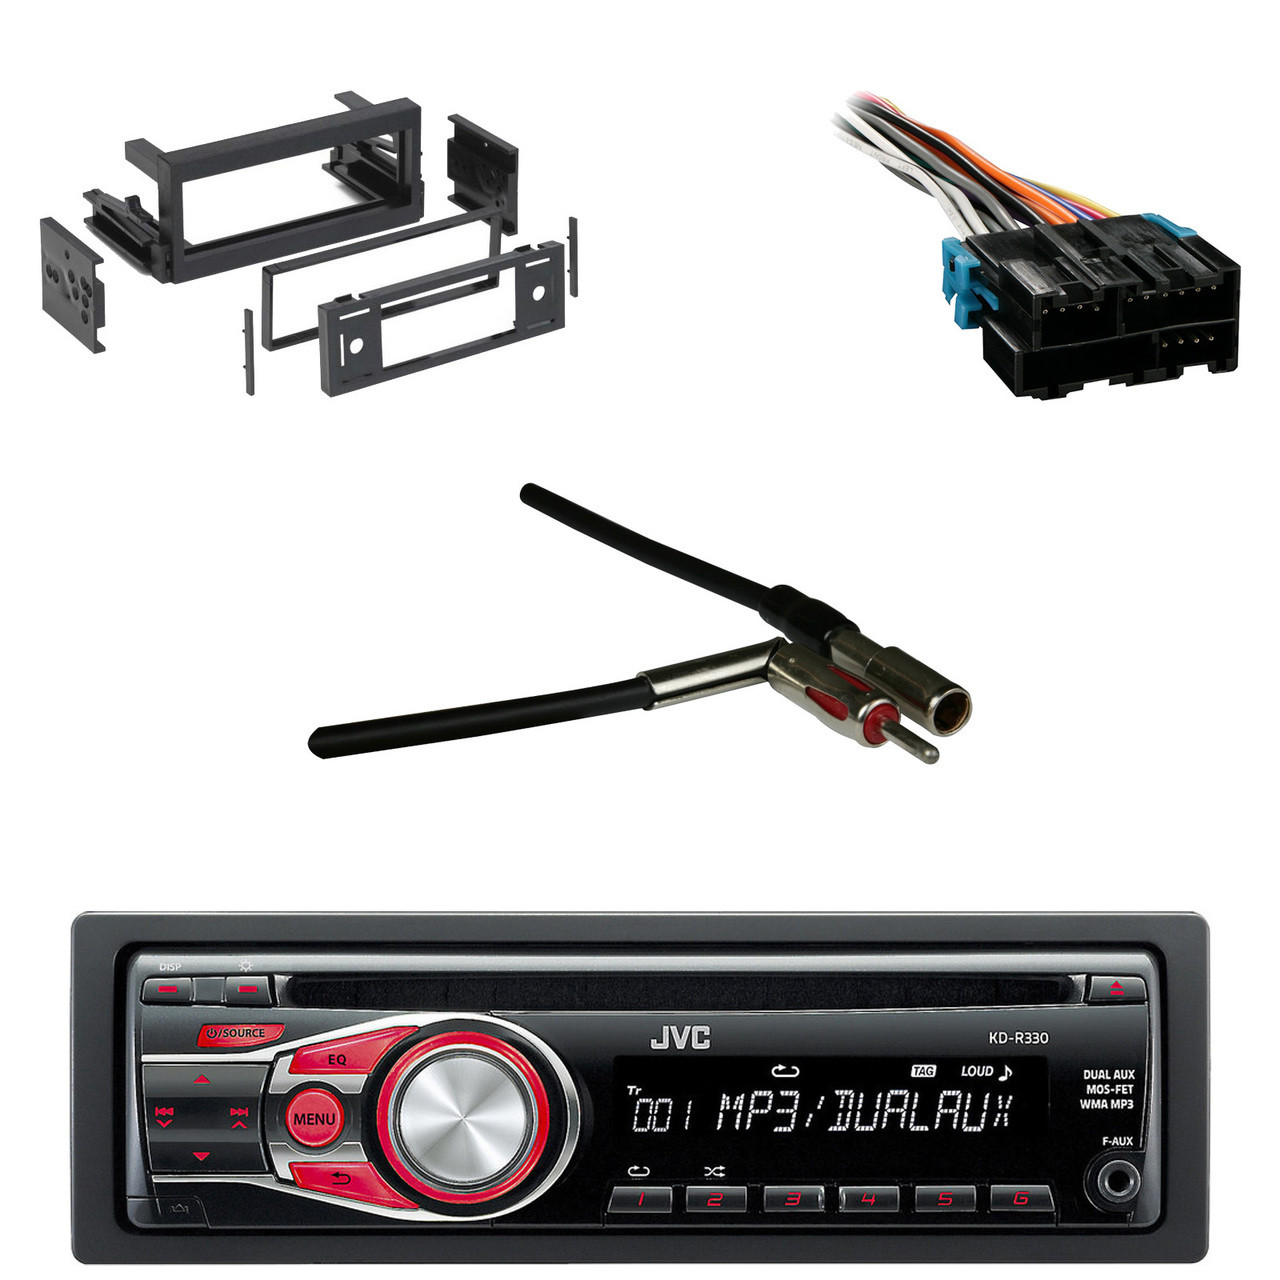 small resolution of jvc kdr330 cd aux car radio antenn adapter gm wire harness gmjvc kdr330